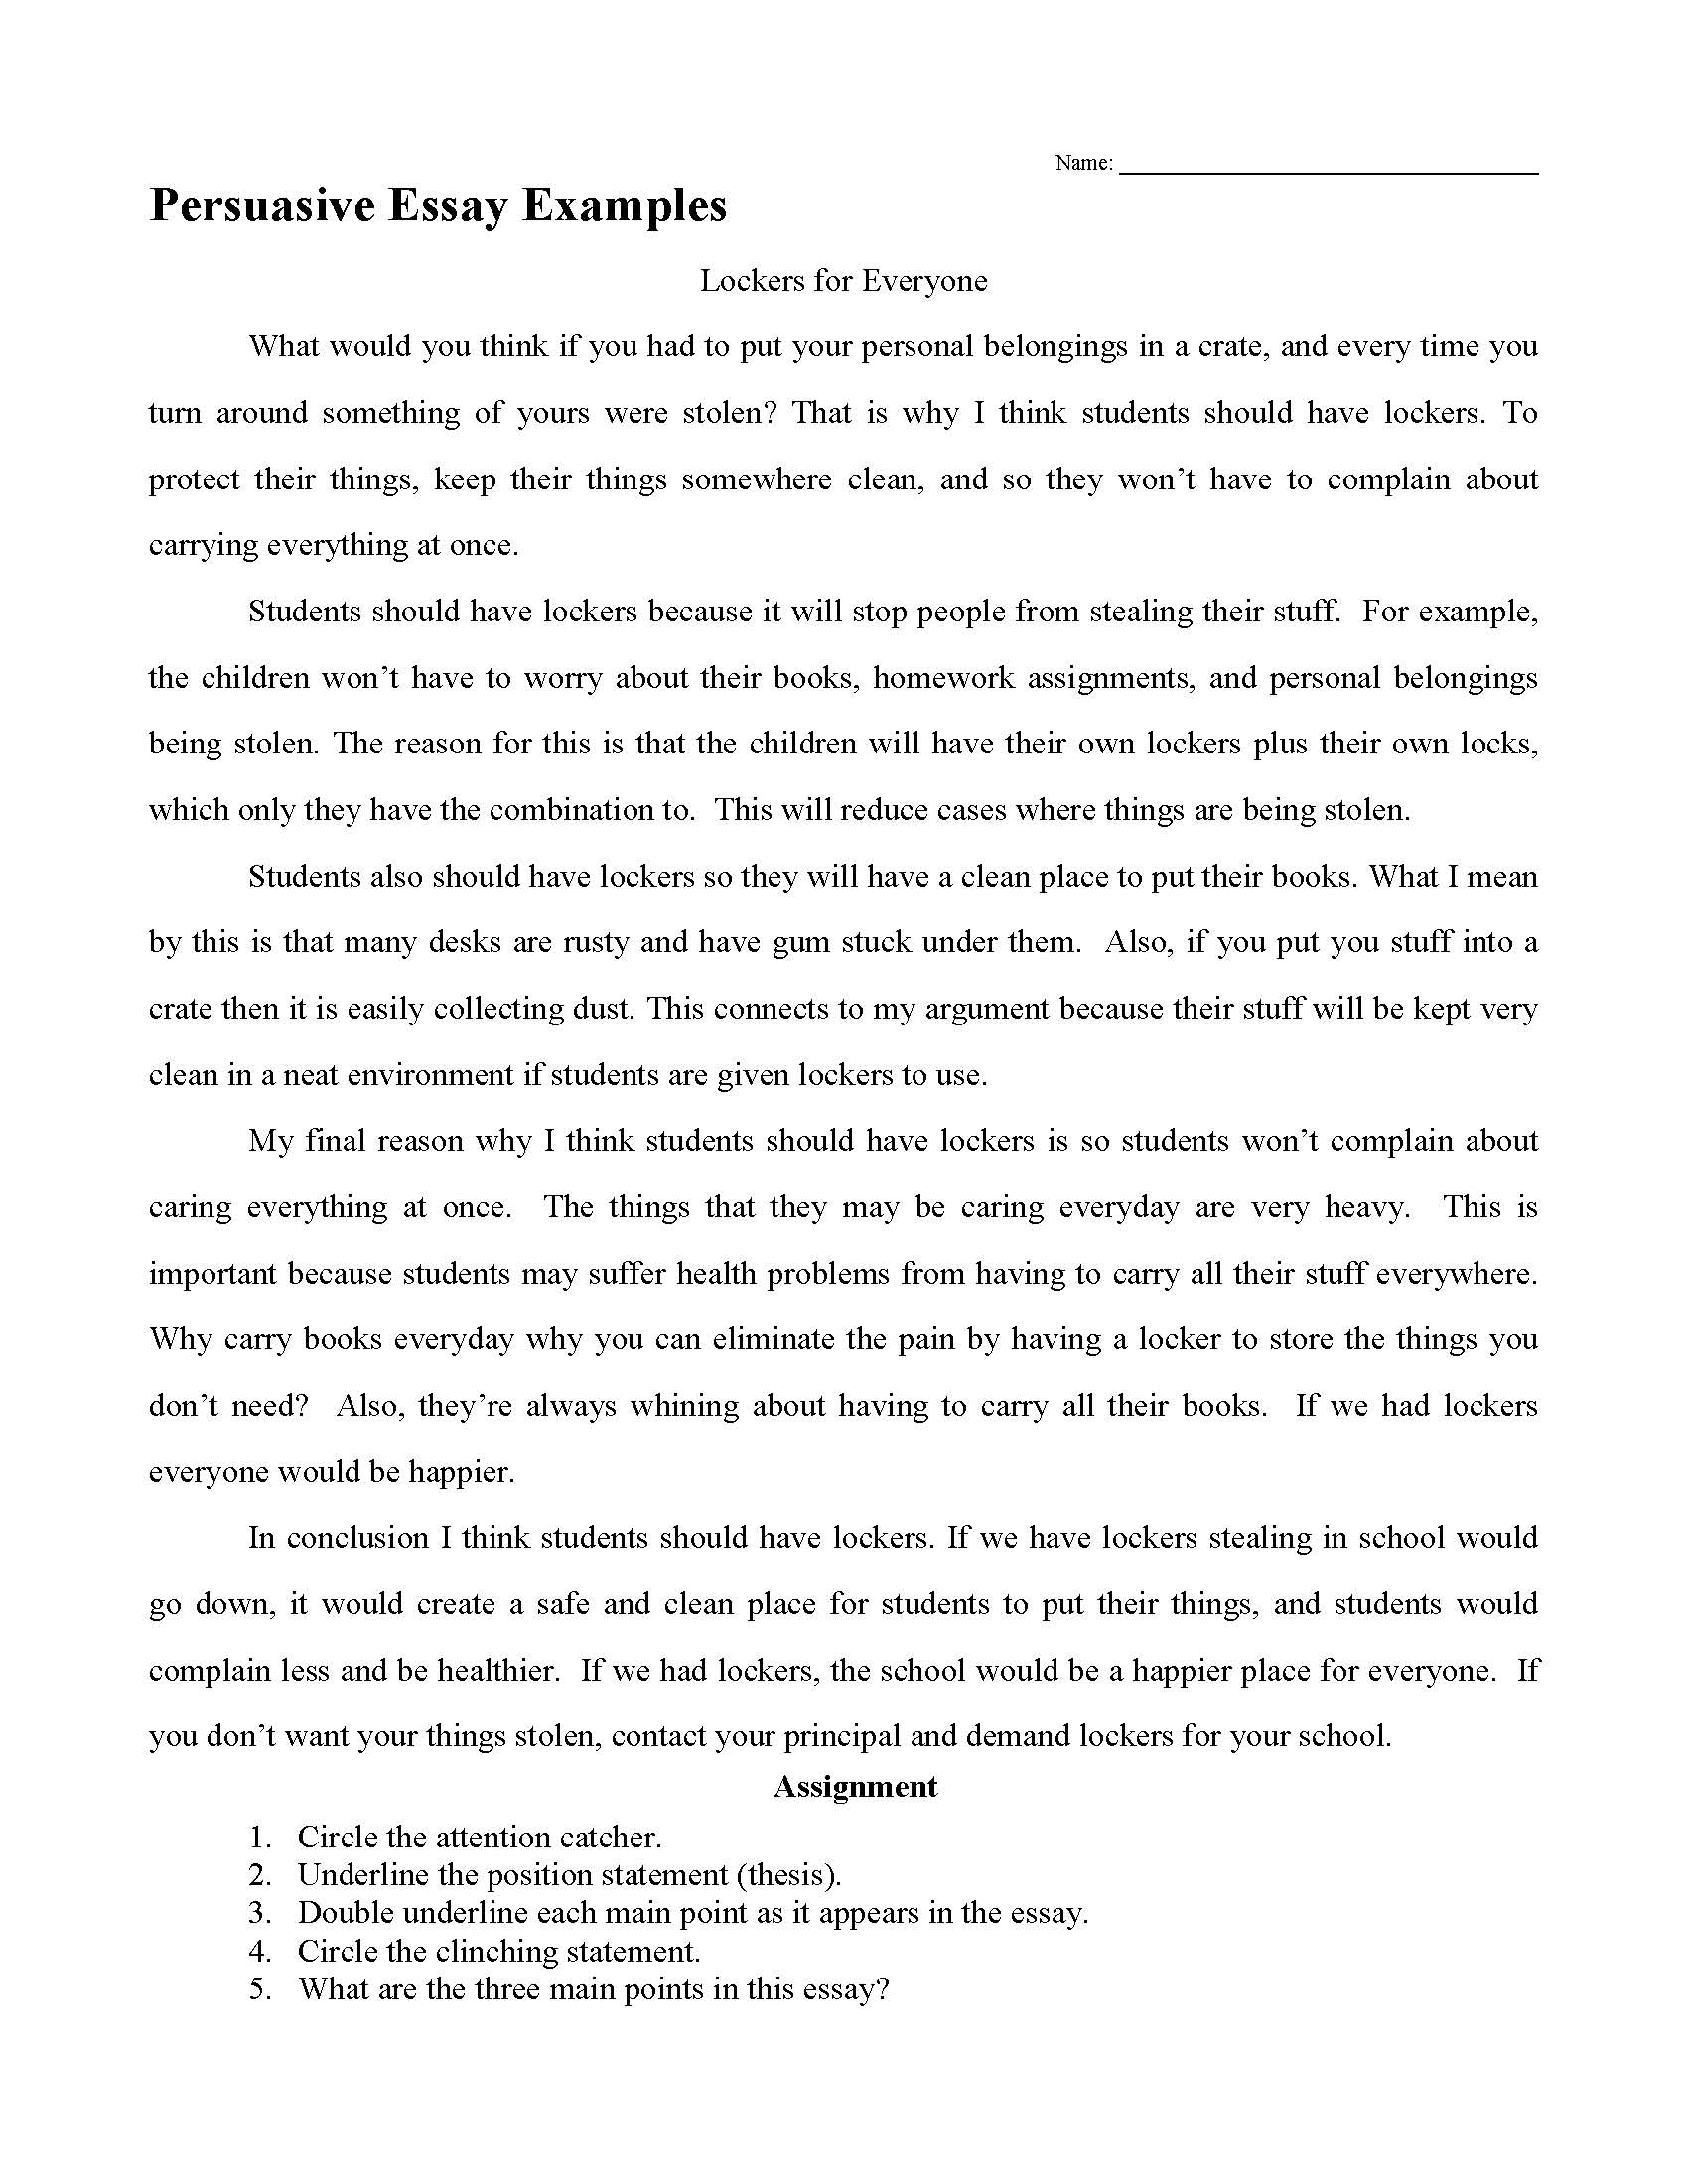 016 Good Research Paper Topics About Music Persuasive Essay Examples Unbelievable Full